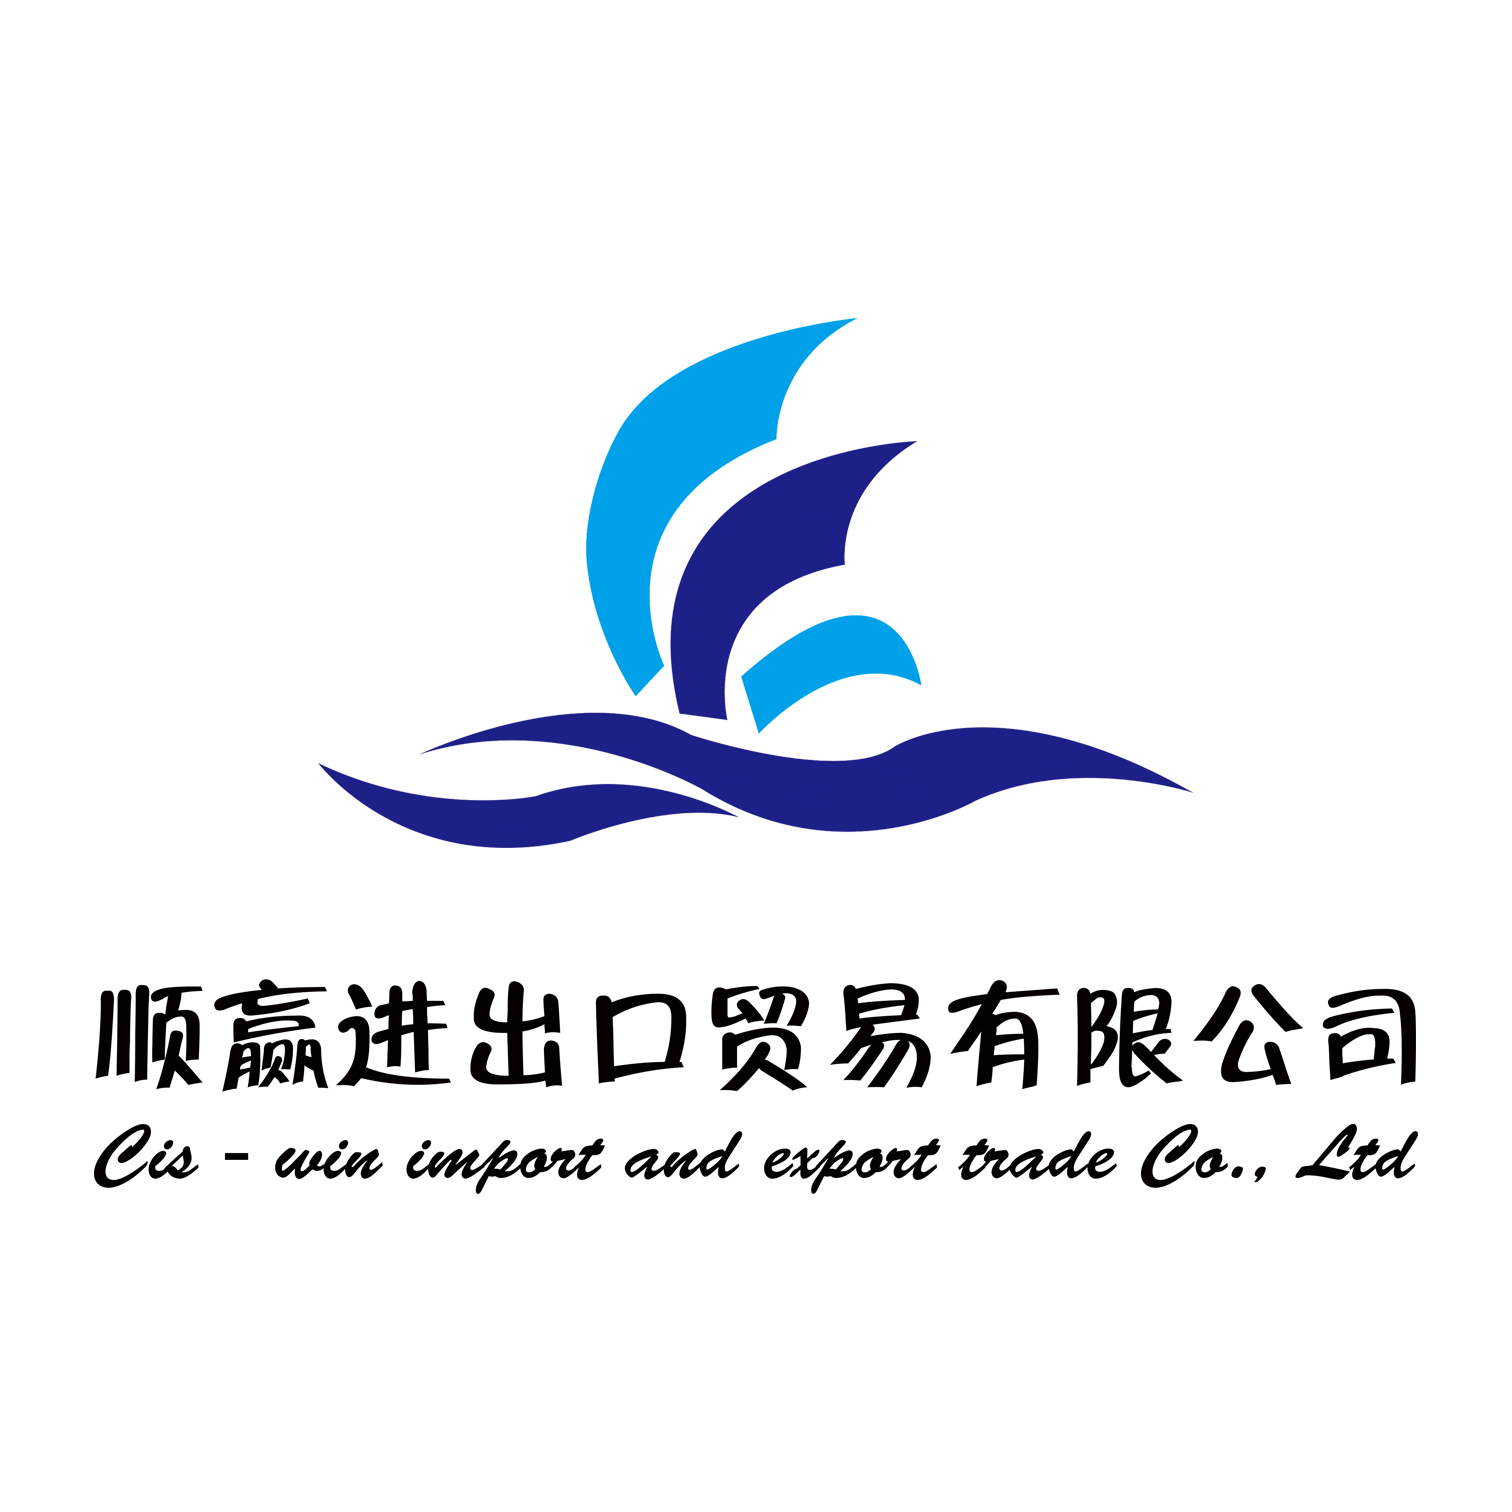 Haicheng Cis-win Import and Export Trading Co., Ltd.